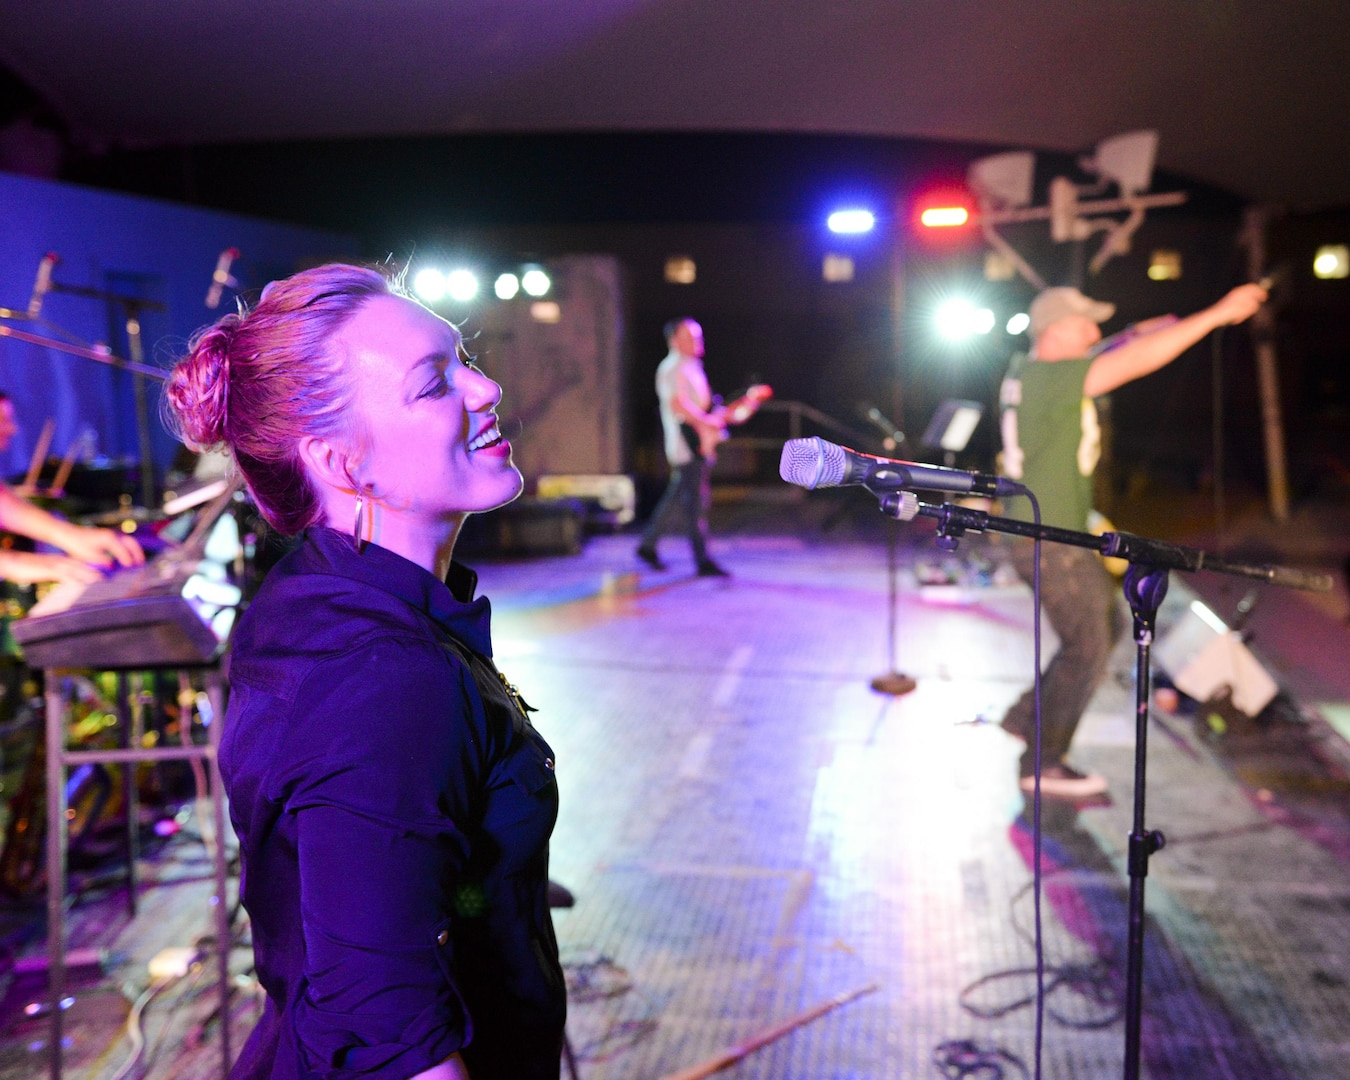 U.S. Air Force Airman 1st Class Anneke Bentley, left foreground, and Staff Sgt. Denver Murphy, vocalists assigned to the Air Force Central Command Band, sing during a concert at Al Udeid, Air Force Base, Qatar, May 26, 2017. The AFCENT Band, stationed at Al Udeid, travels throughout the Central Command Area of Responsibility in support of building partnerships, boosting morale, and providing diplomacy and outreach to host nation communities. (U.S. Air Force photo by Tech. Sgt. Bradly A. Schneider/Released)